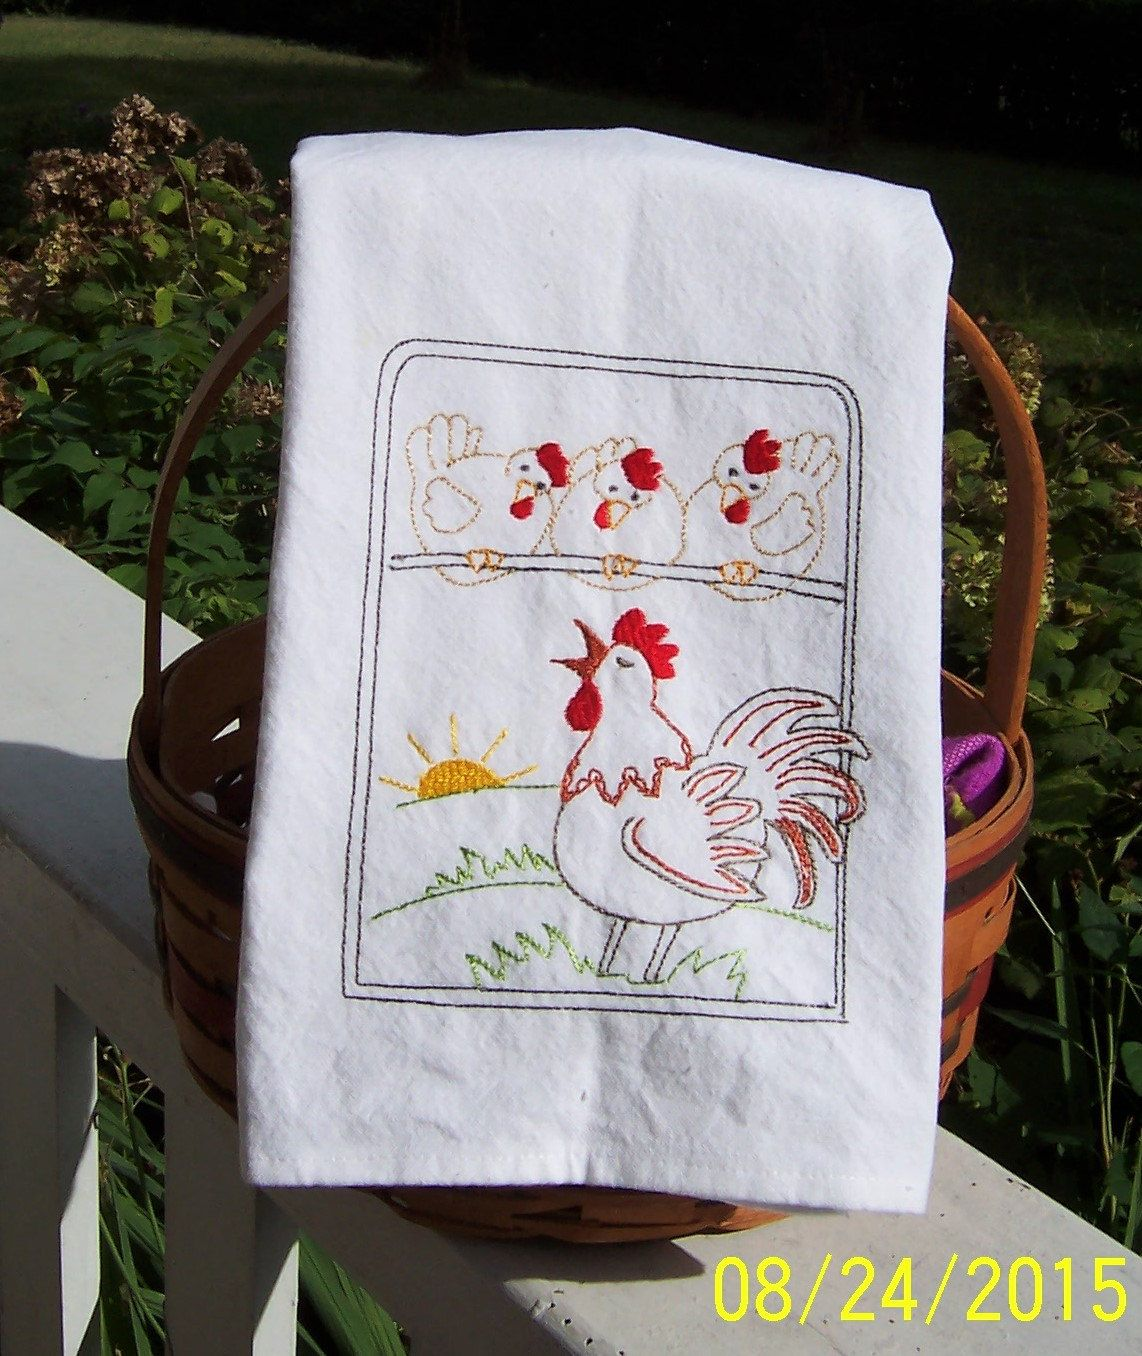 King of the Roost Tea Towel, Embroidered Dish Towel, Embroidered Kitchen Towel, Embroidered Tea Towel, Embroidered Kitchen Dish Towel #dishtowels